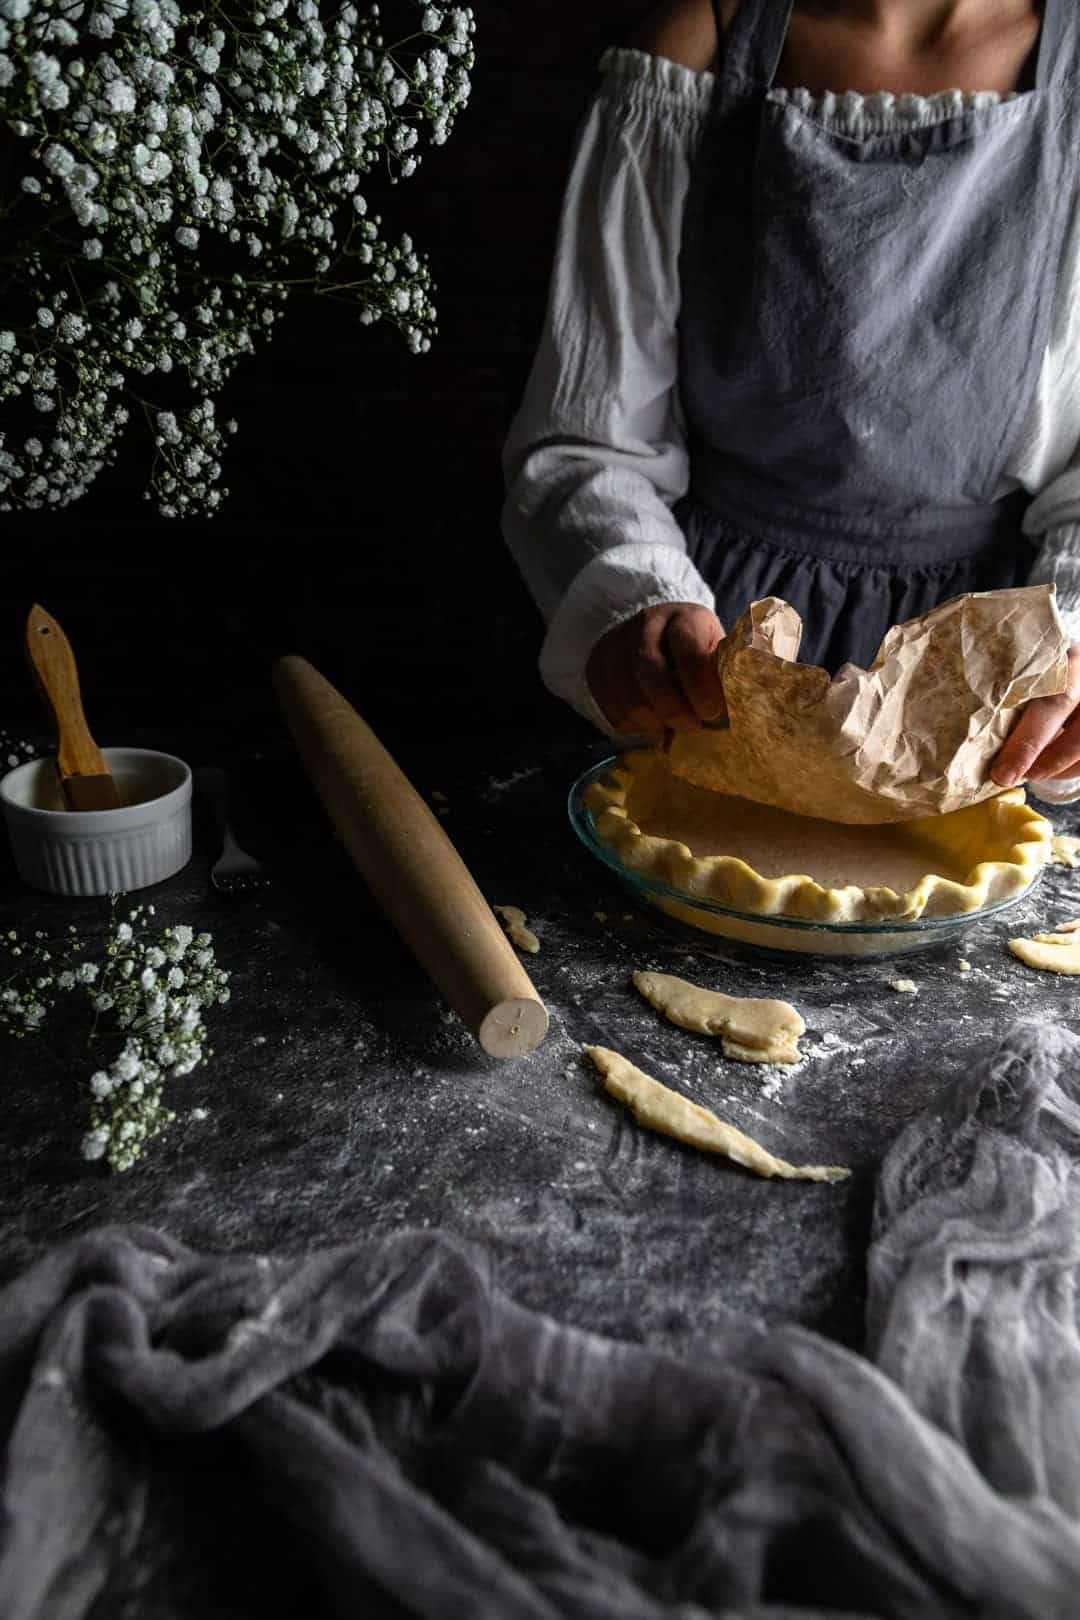 A woman placing a crumpled coffee filter into the bottom of an unbaked crimped pie crust next to a rolling pin and vase of tiny white flowers